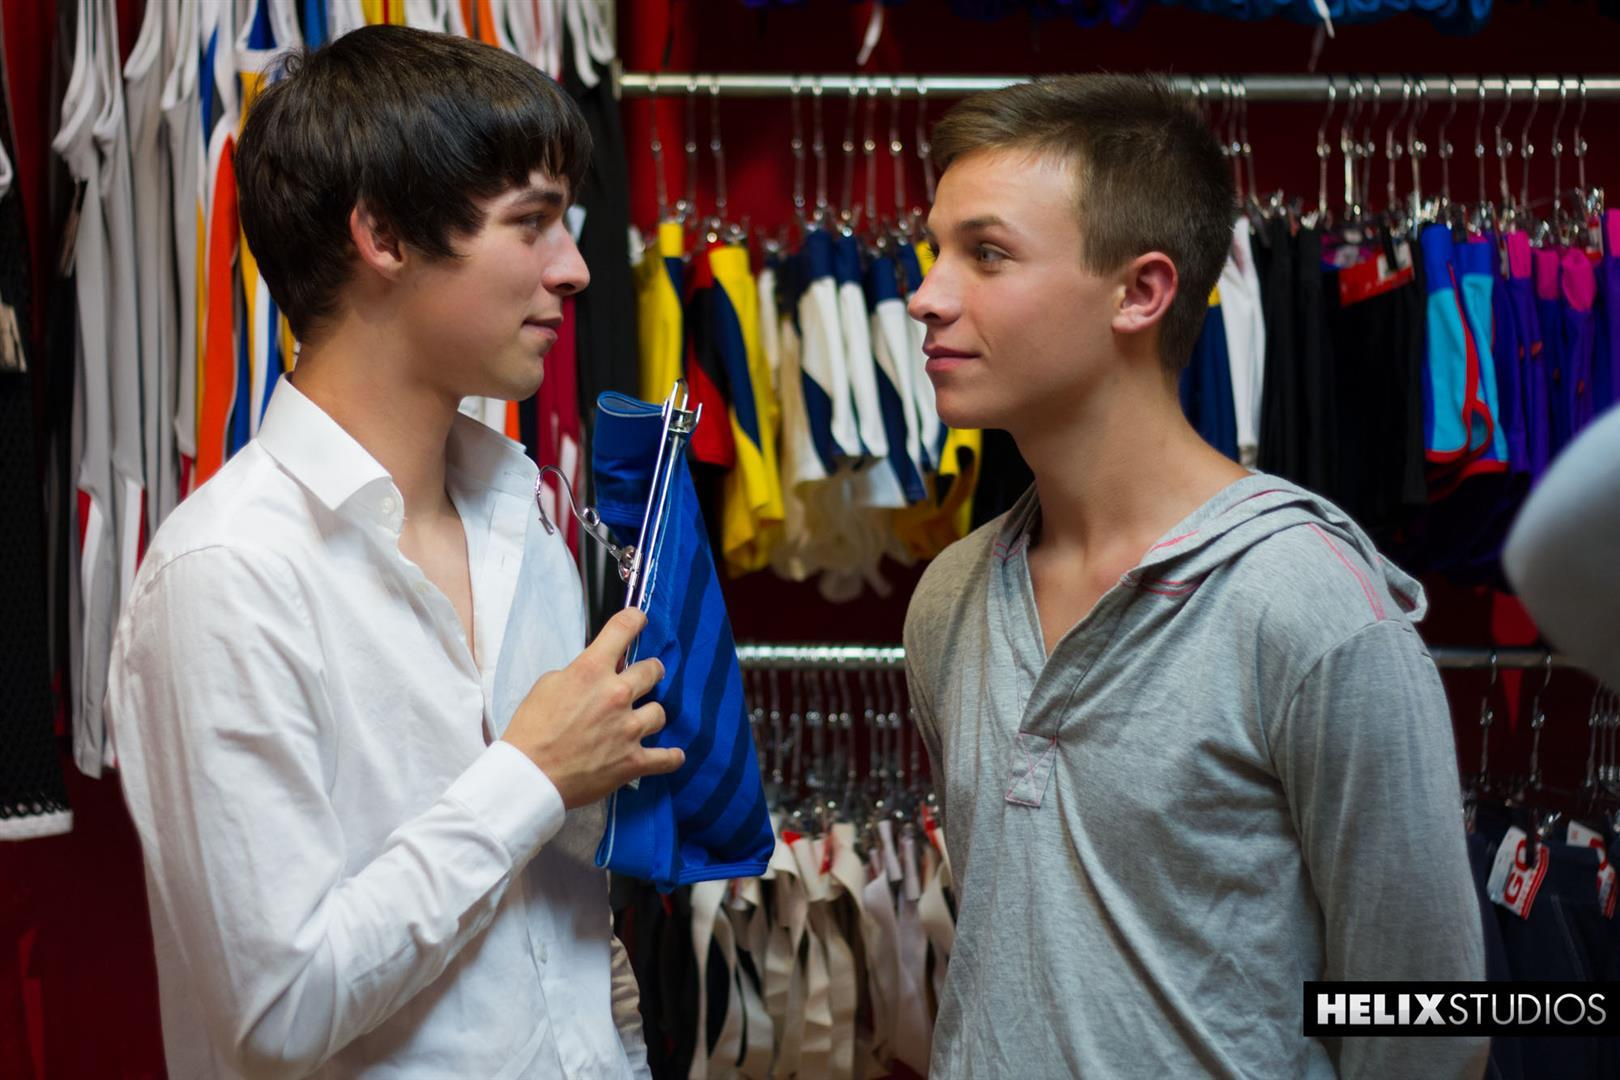 Helix-Studios-Jacob-Dixon-and-Matthew-Keading-Big-Cock-Twinks-Barebacking-Amateur-Gay-Porn-01 Two Amateur Twinks Barebacking In A Store Fitting Room